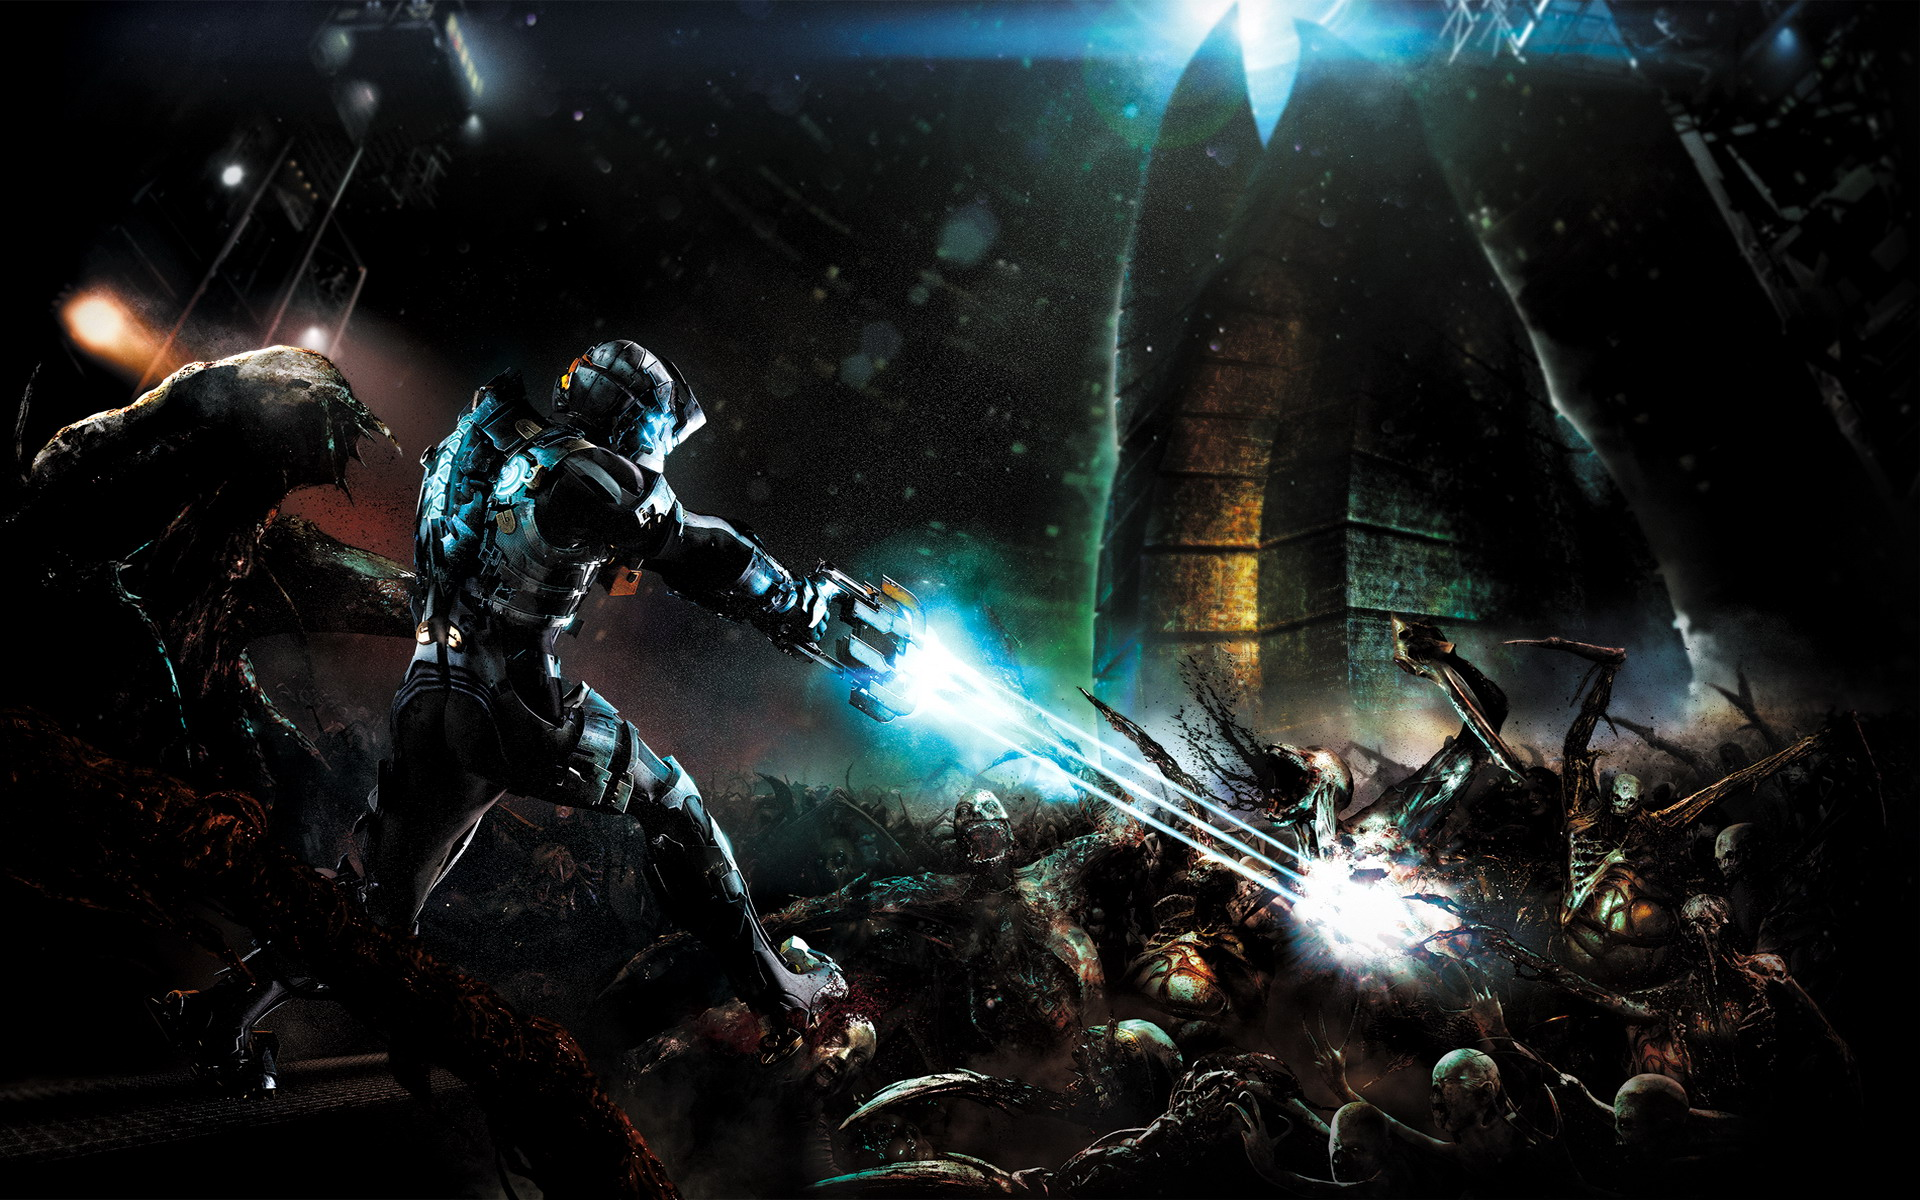 2011 Dead Space 2 493.22 Kb